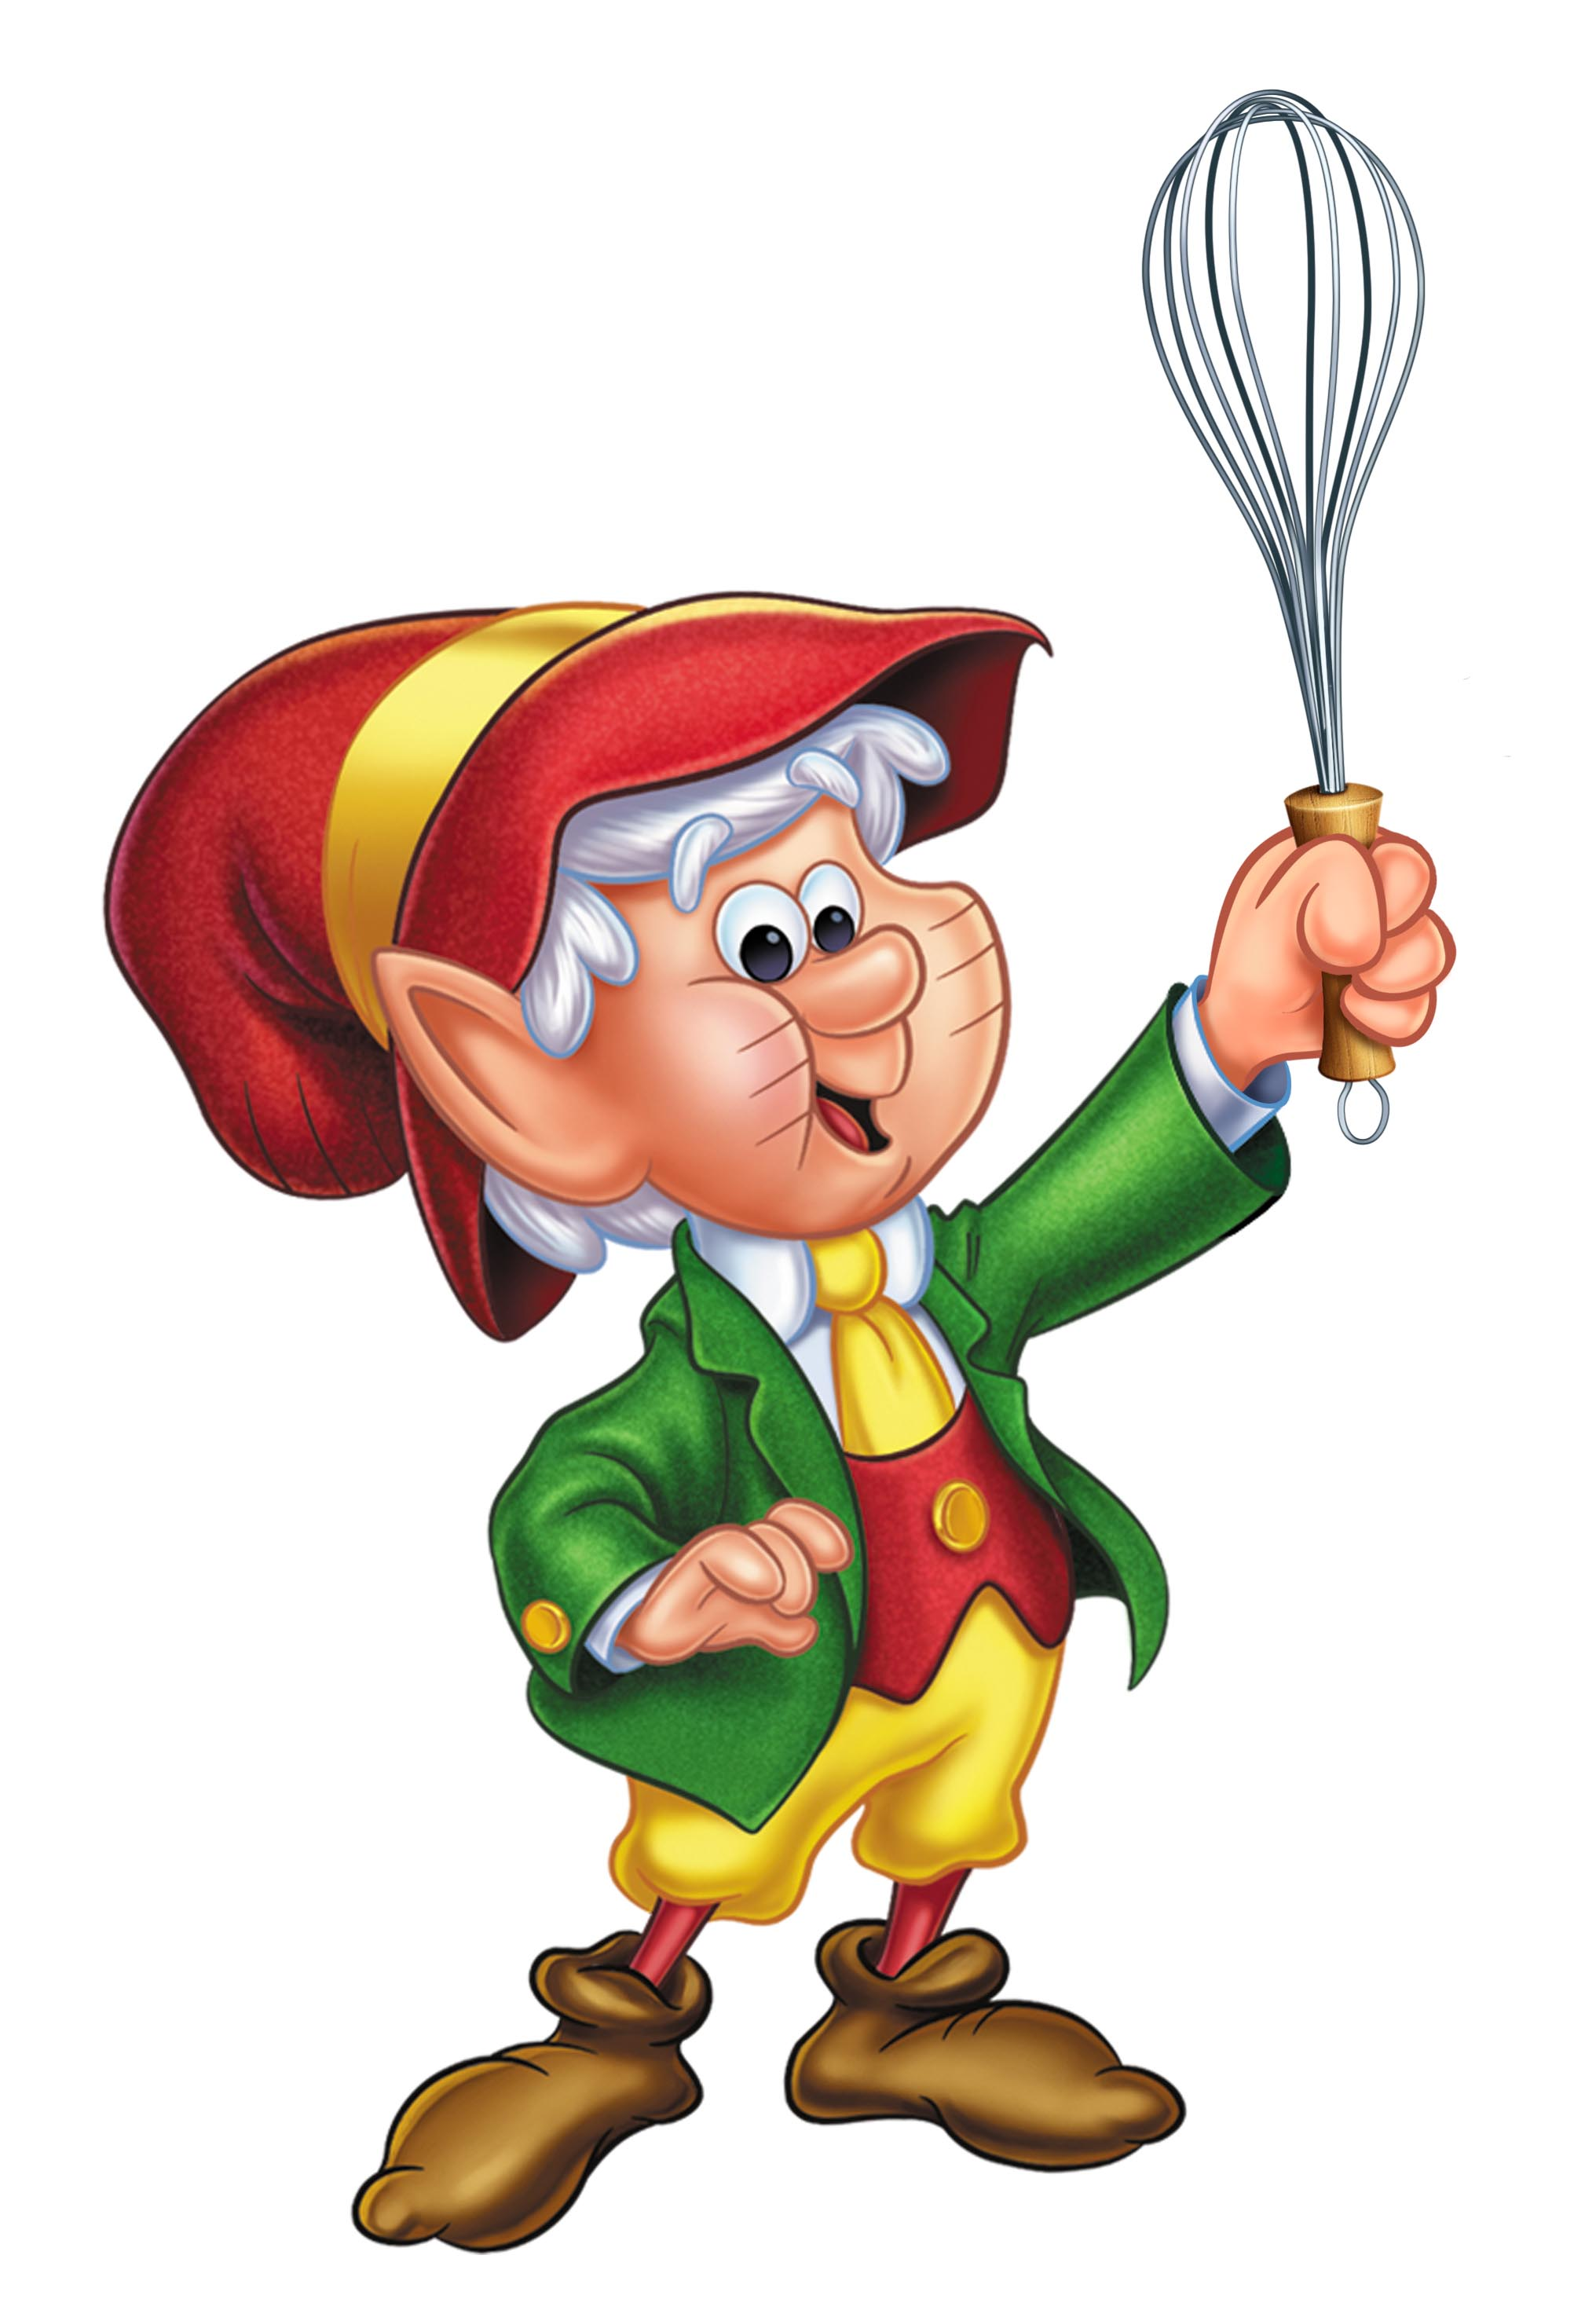 Ray Goudey Illustration Keebler Ernie the Elf Character